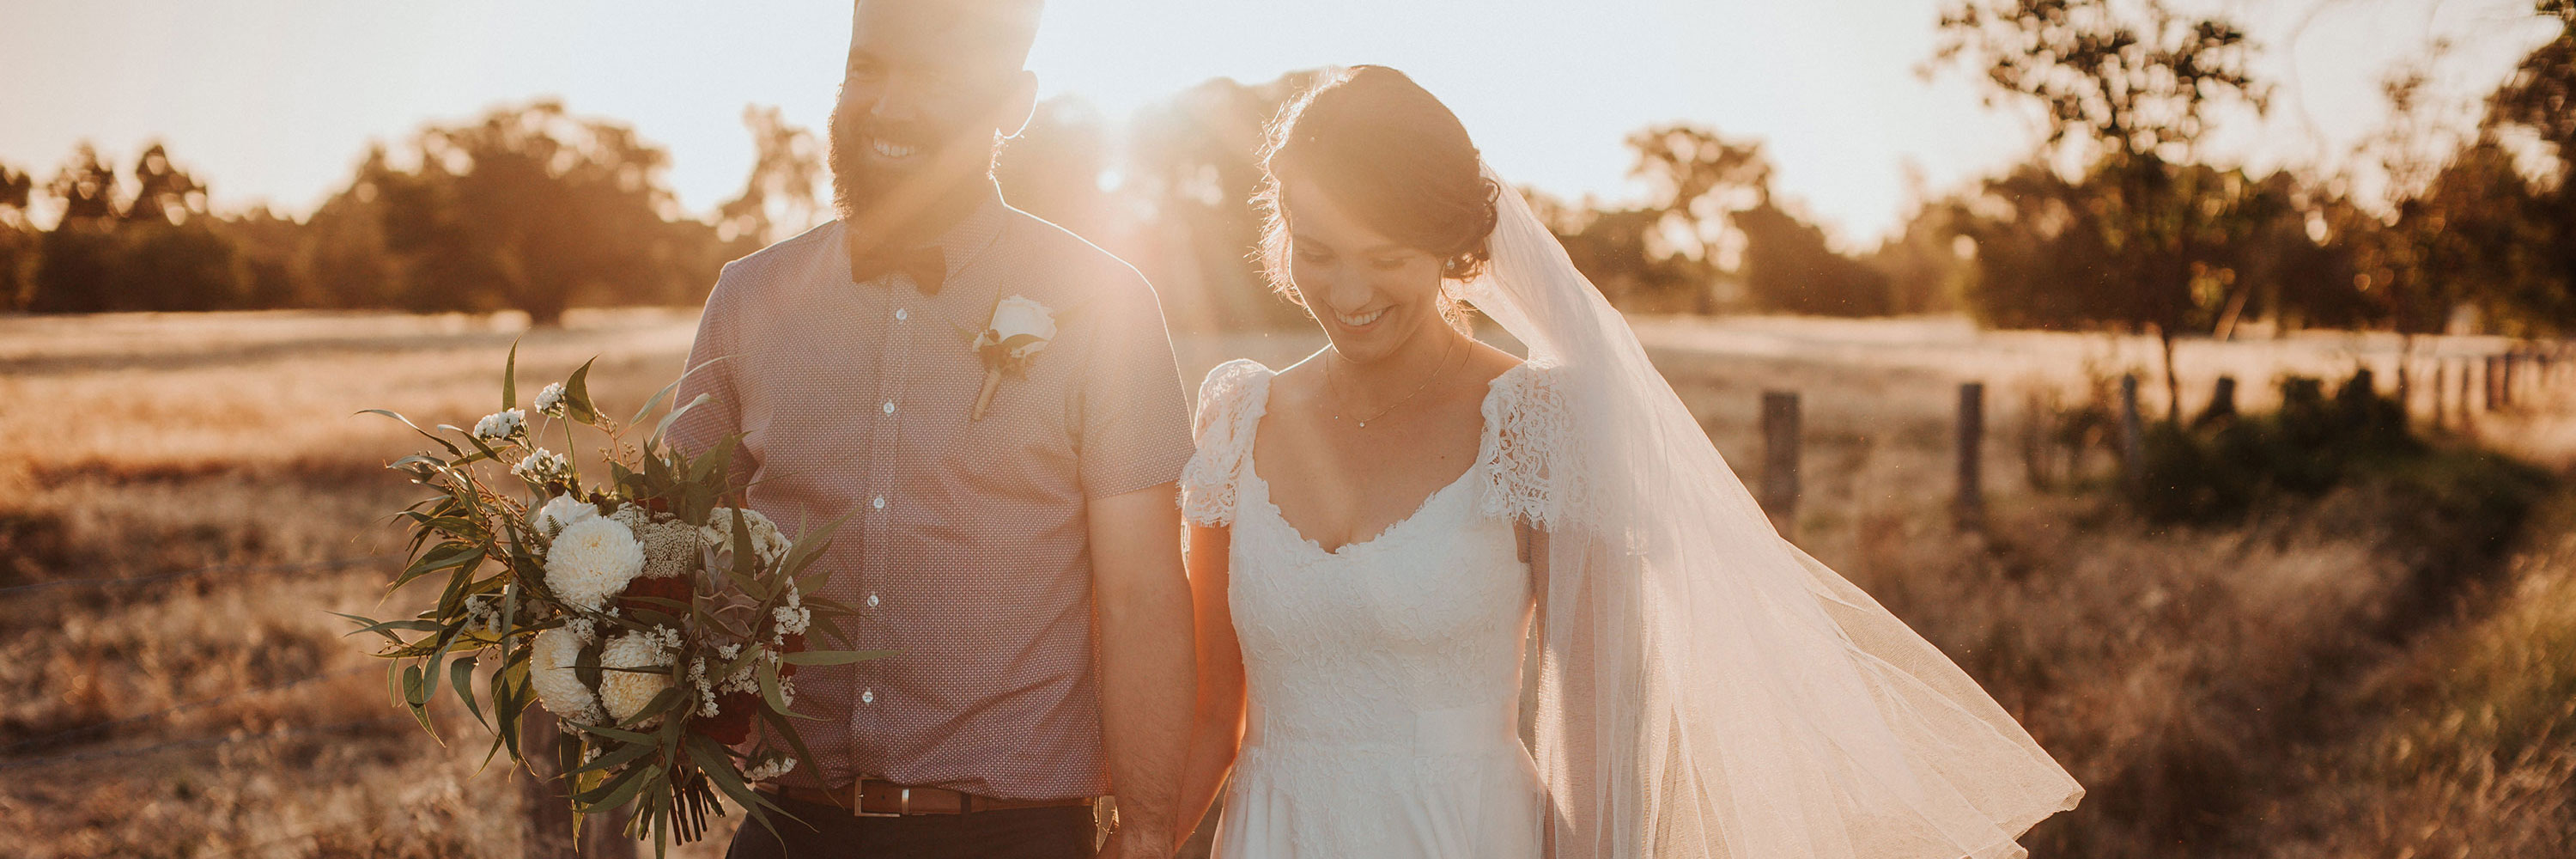 Shannon Stent Images | Margaret River Wedding Photographer. Margaret River Wedding Photography